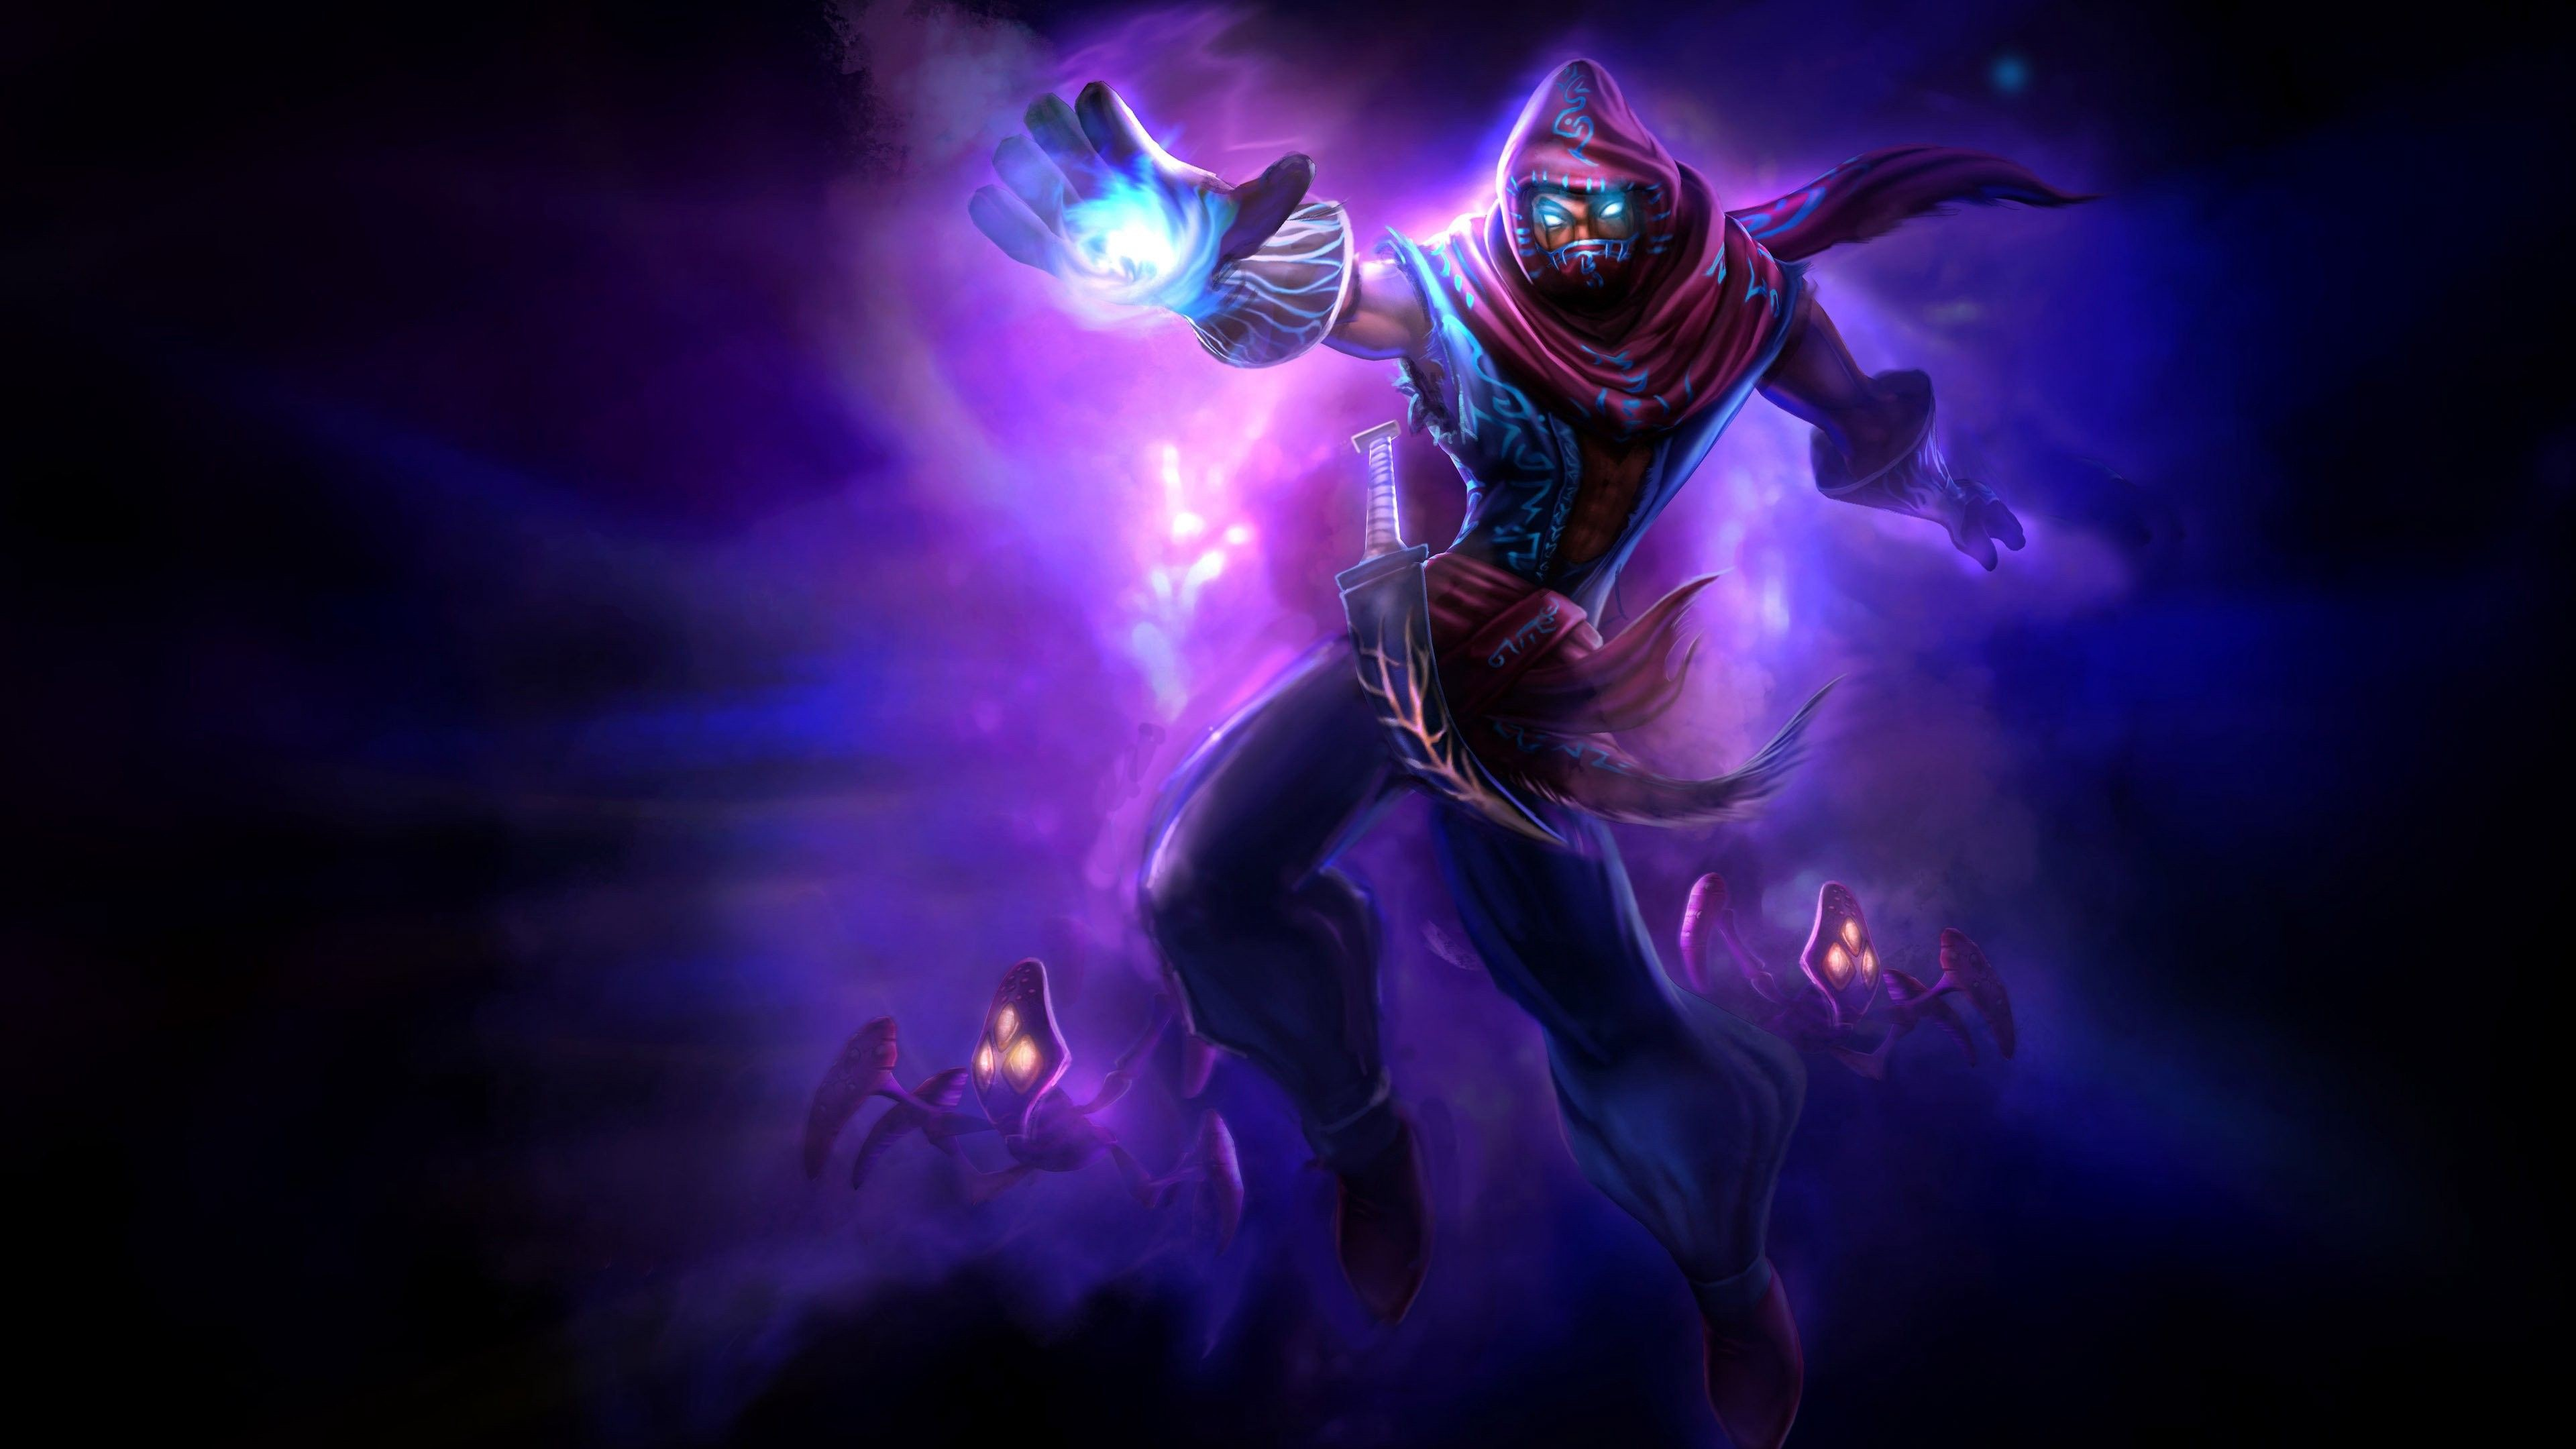 League Of Legends Malzahar 4k Wallpaper Jignesh Patani Medium